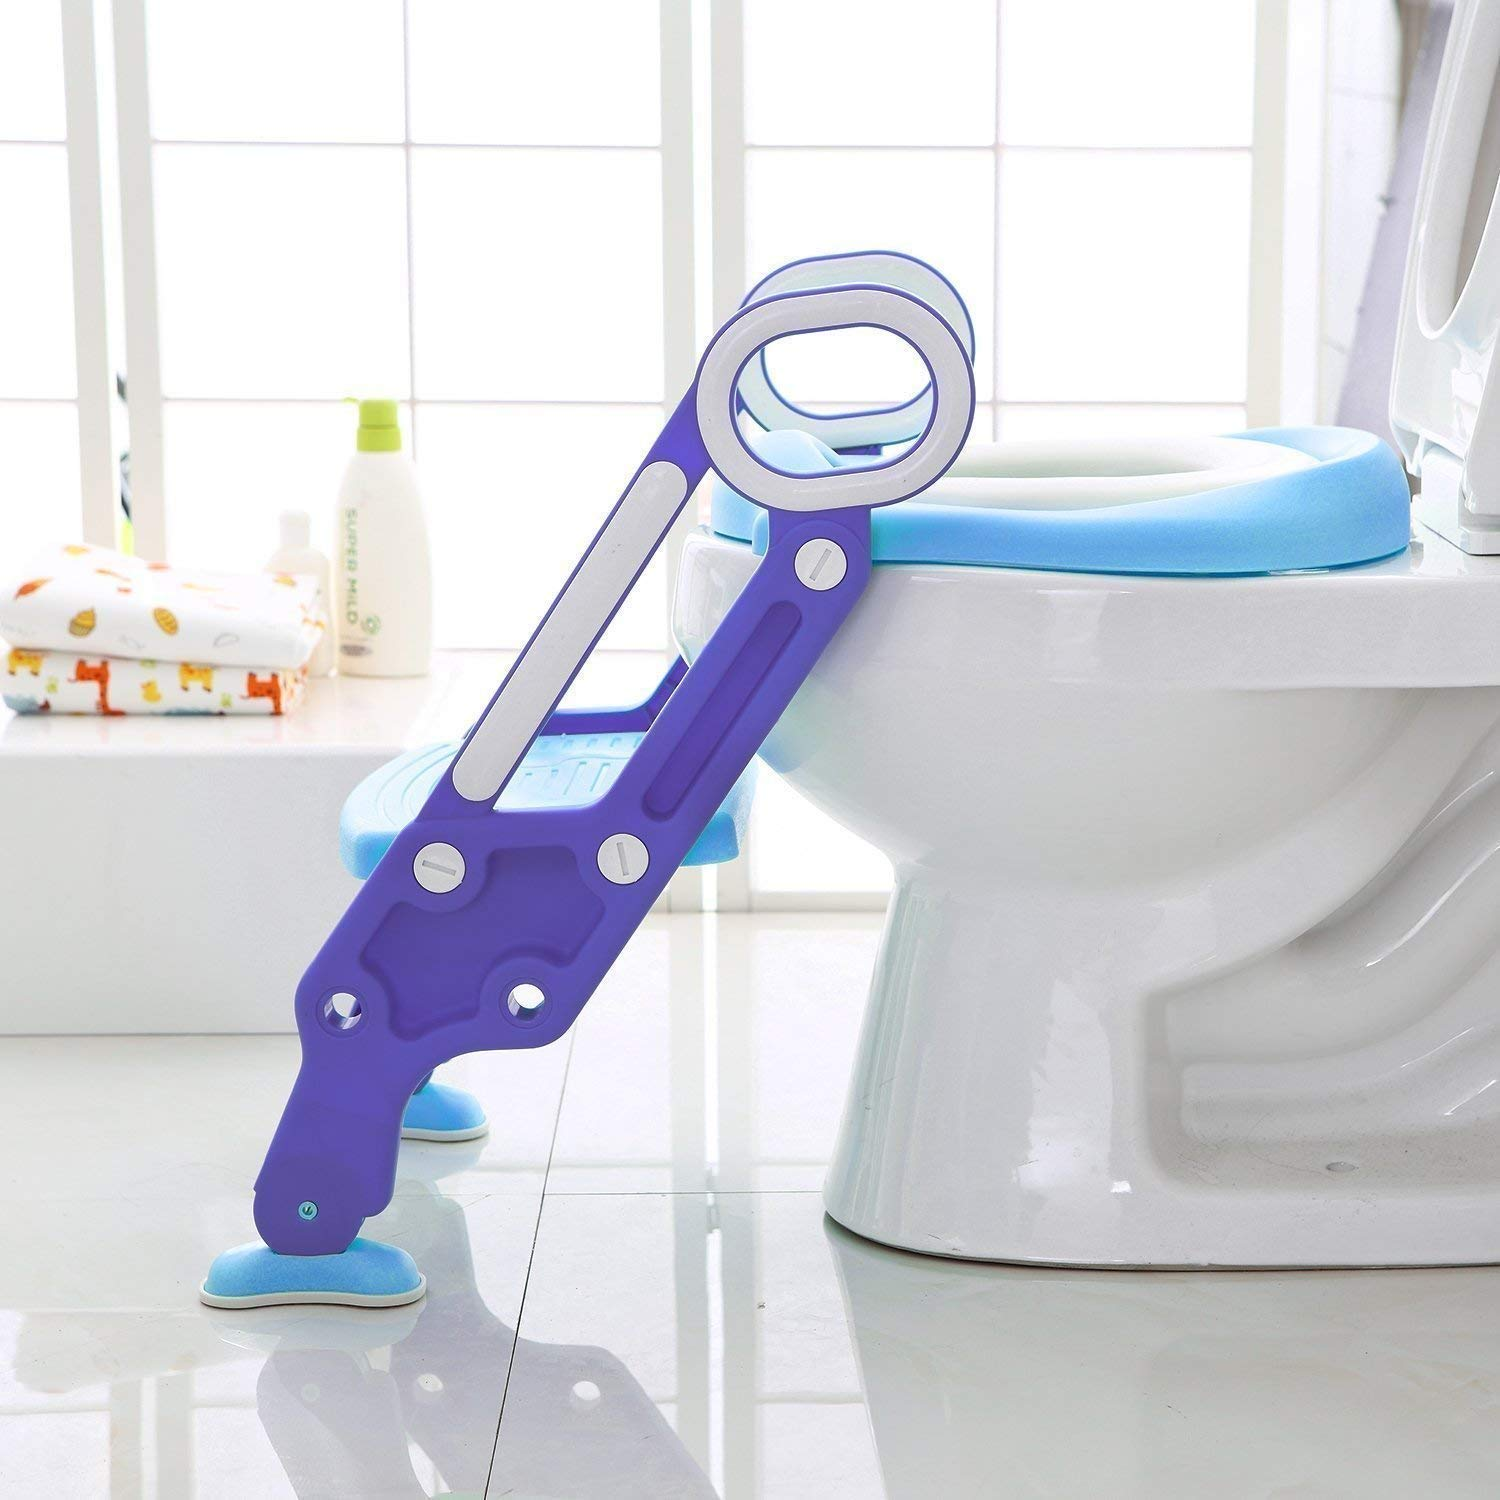 ZGWJ Potty Training Ladder Seat for Kids-Adjustable Stair Potty Seat with Soft Padded Seat and Sturdy Non-Slip Wide Step Anti-Splash Design for Boy and Girl Baby Toddler Kid Children/'s Toilet